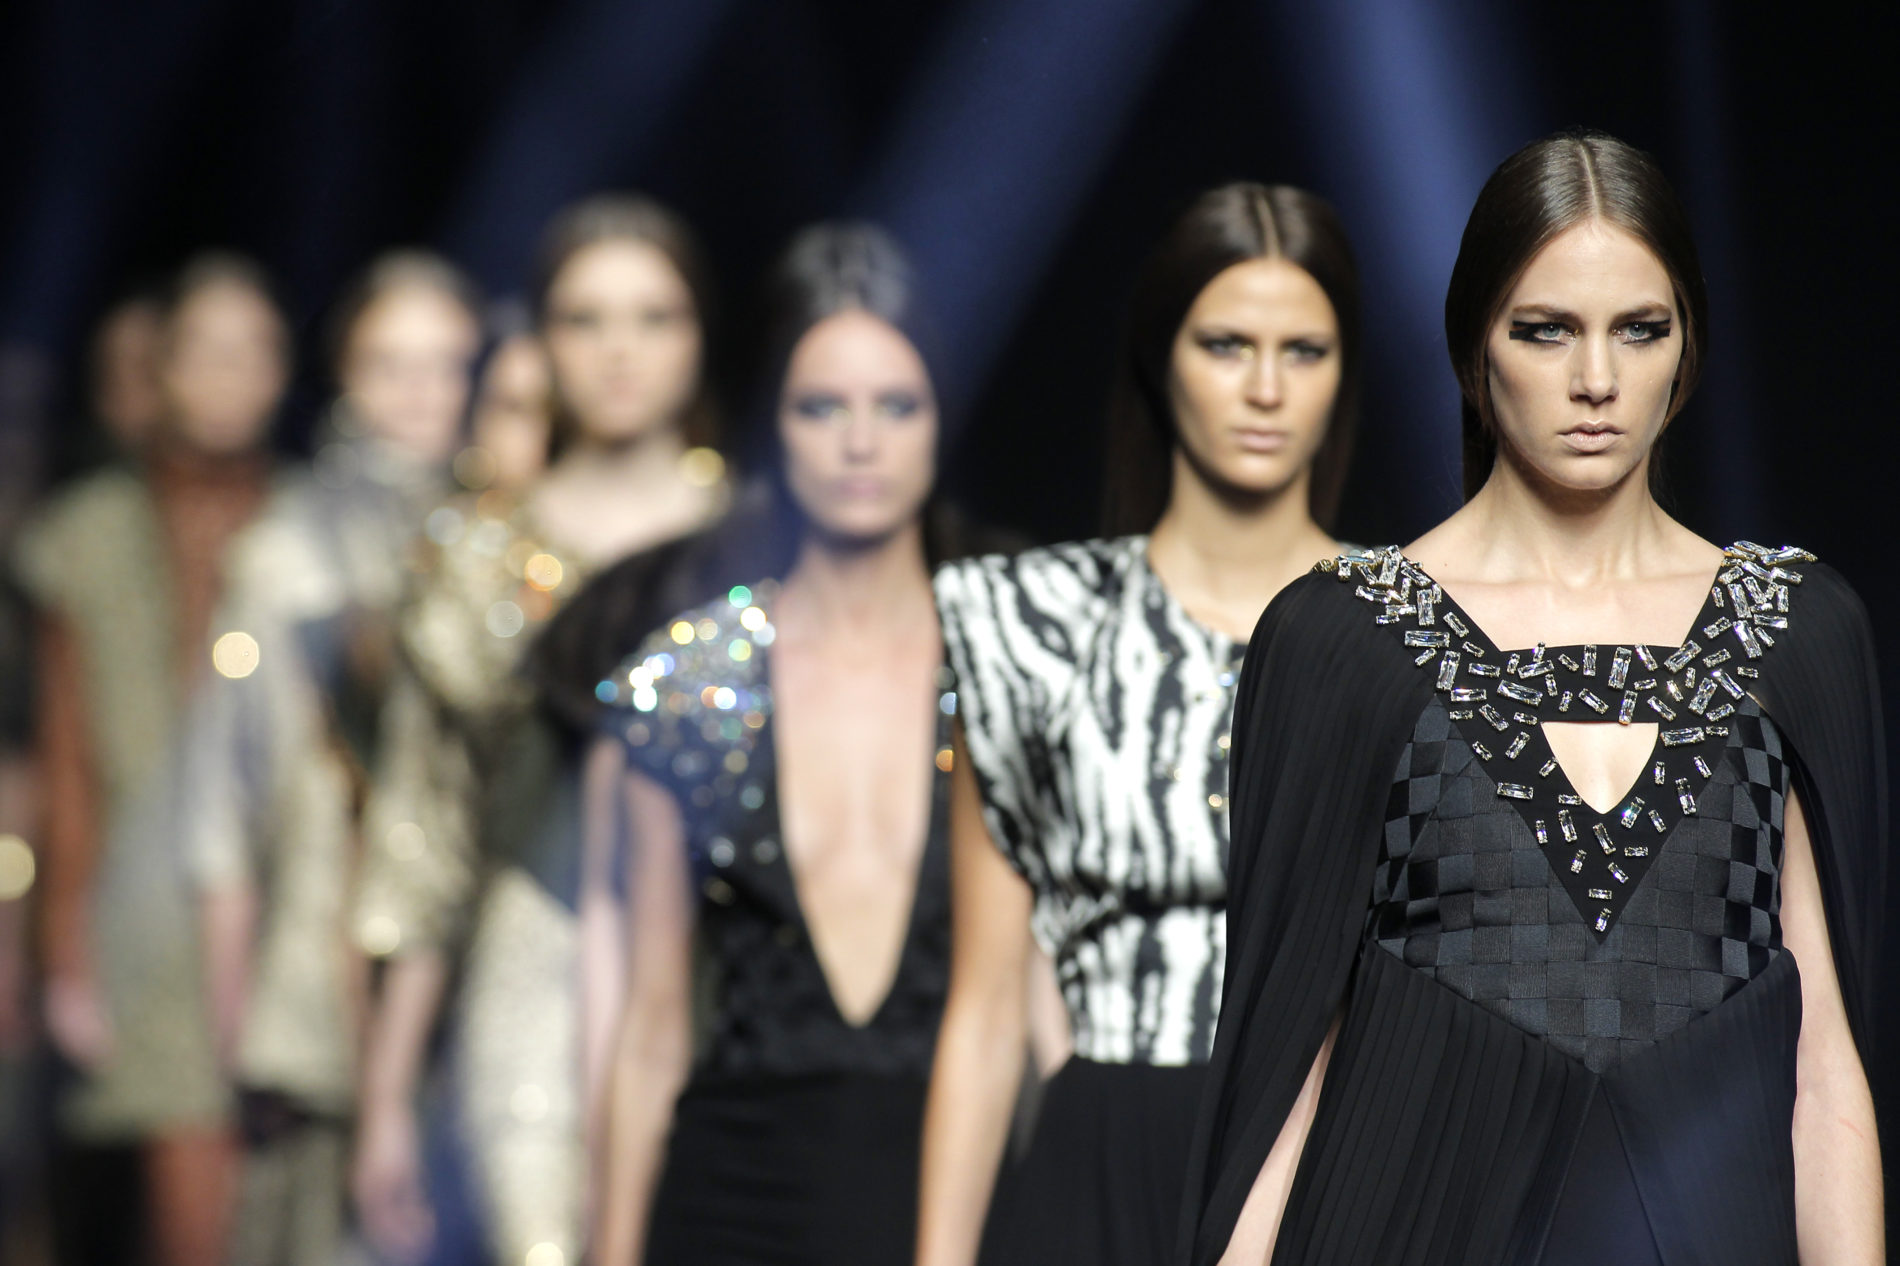 EL FASHION WEEK MADRID SE VE POR MÁS CHIC